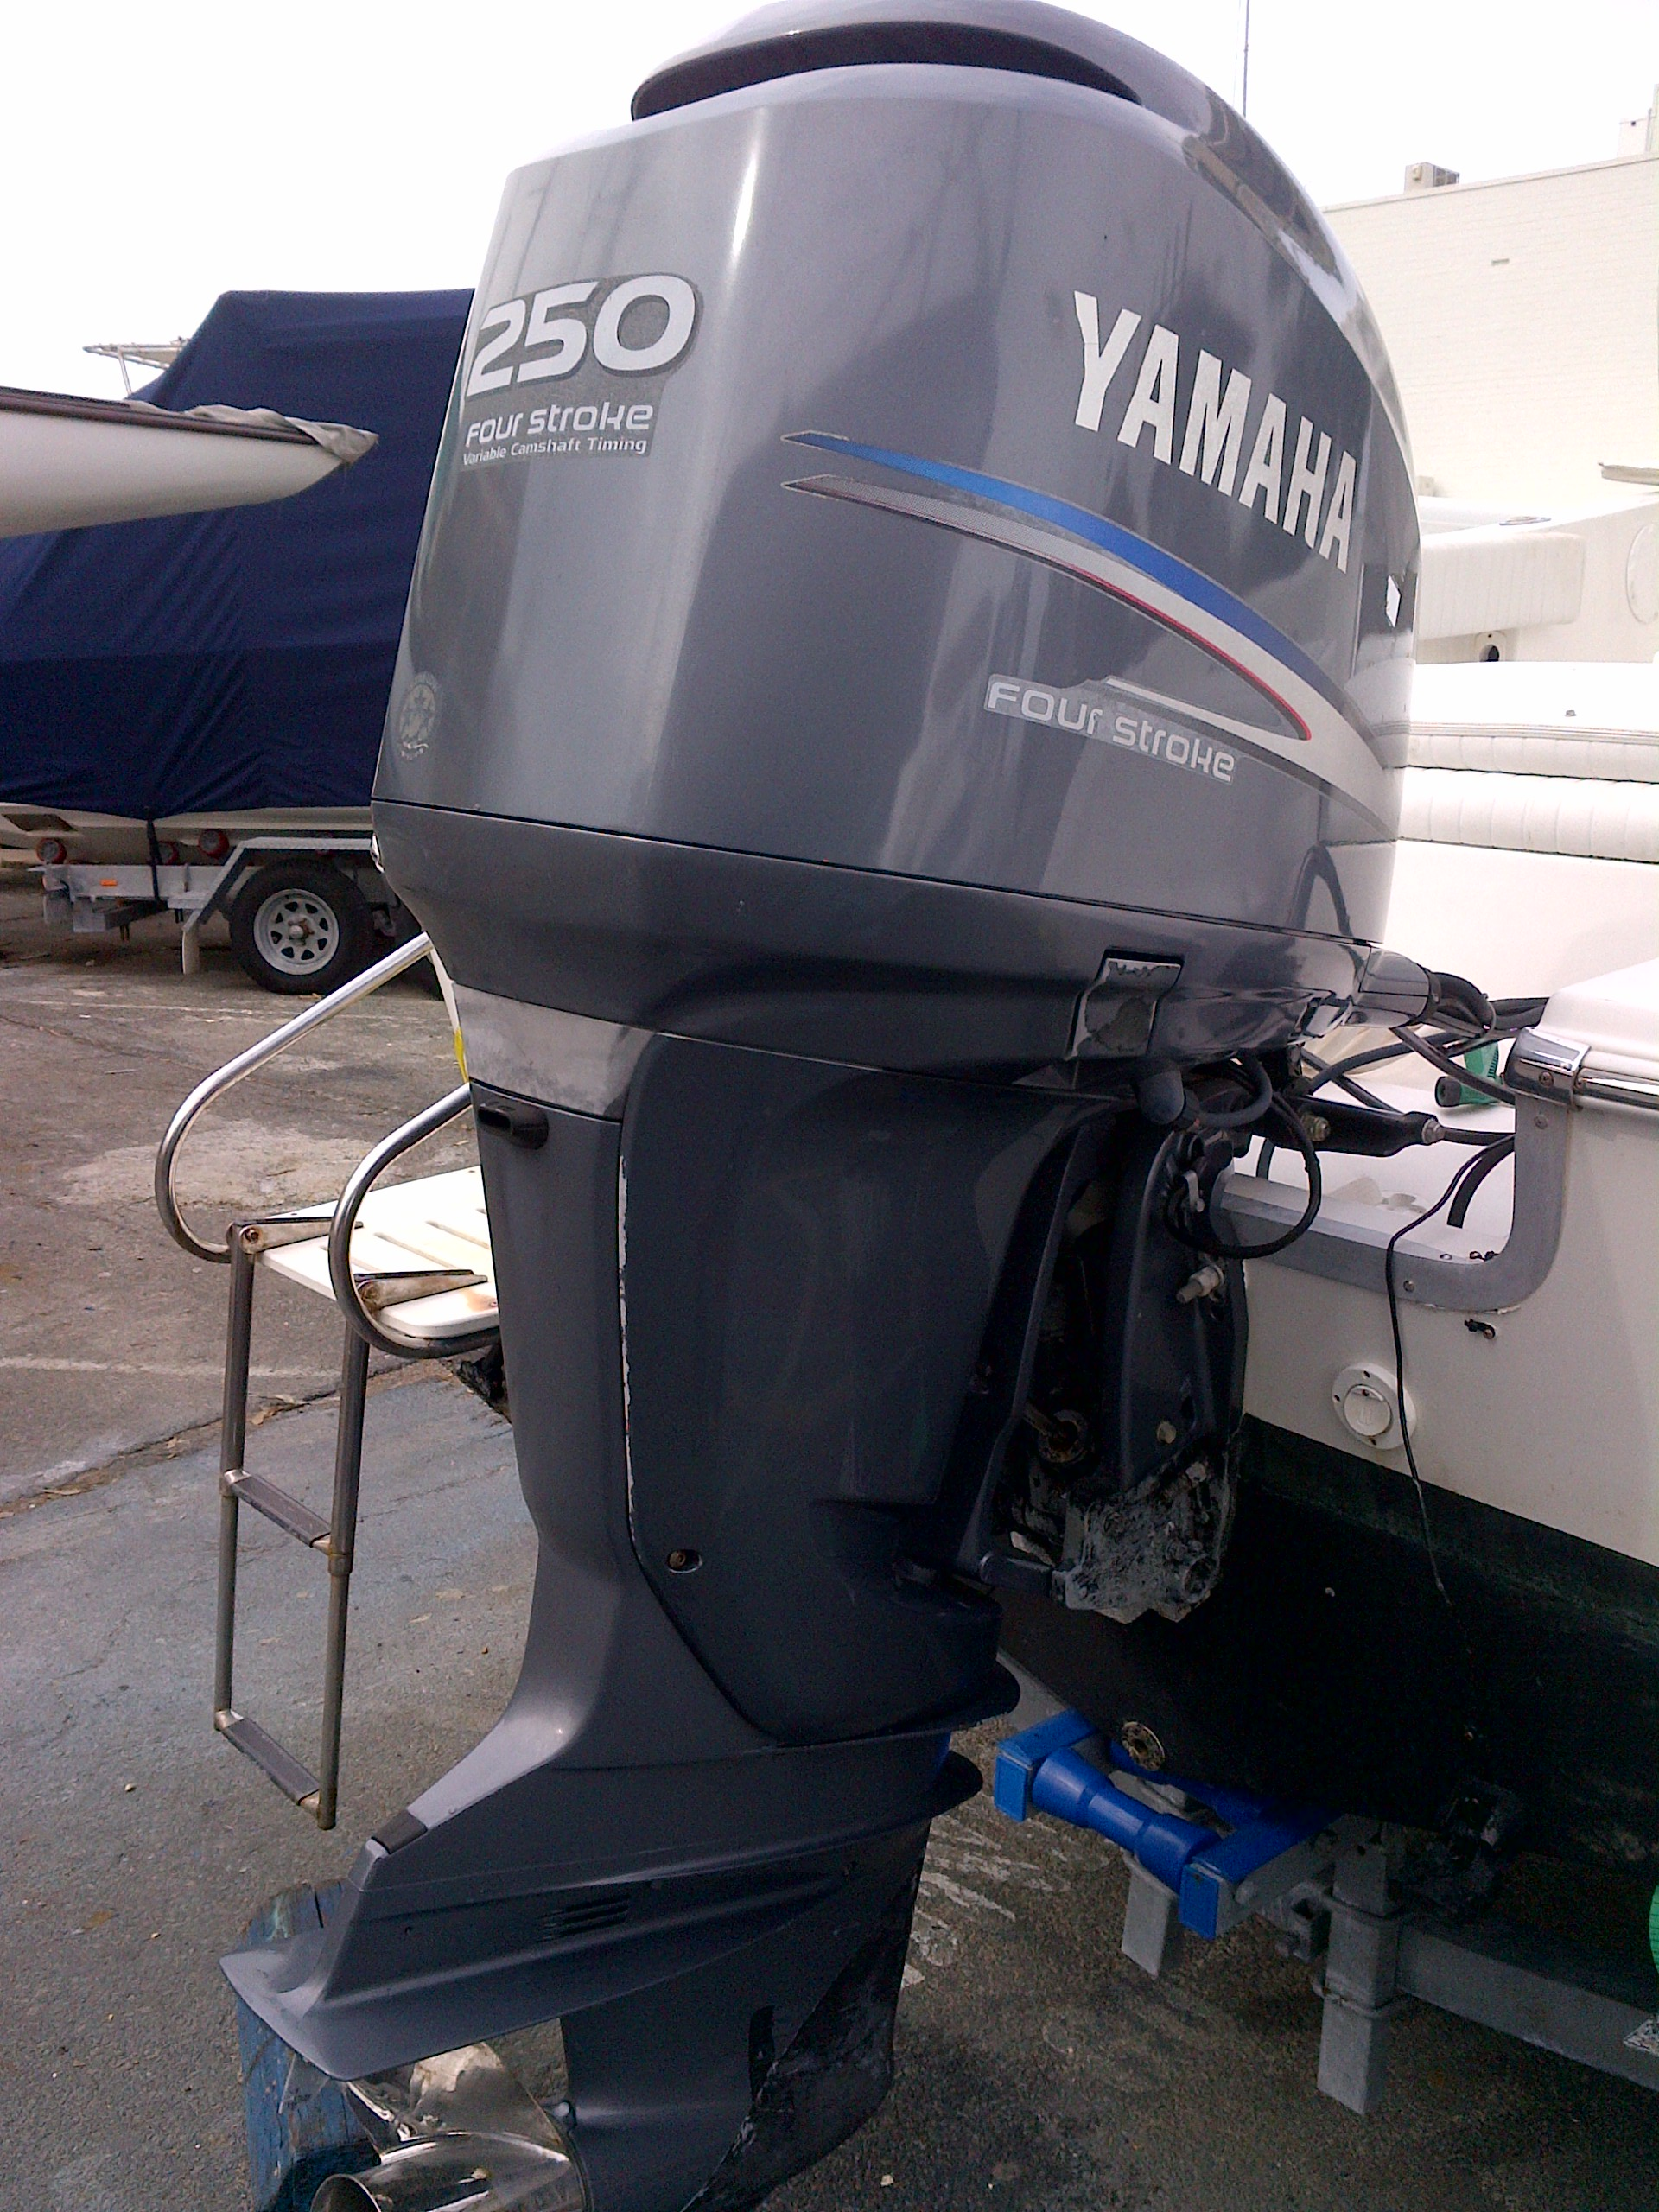 How To Remove Old Cowling Stickers On Outboard Fishing - Boat decals fish   easy removal